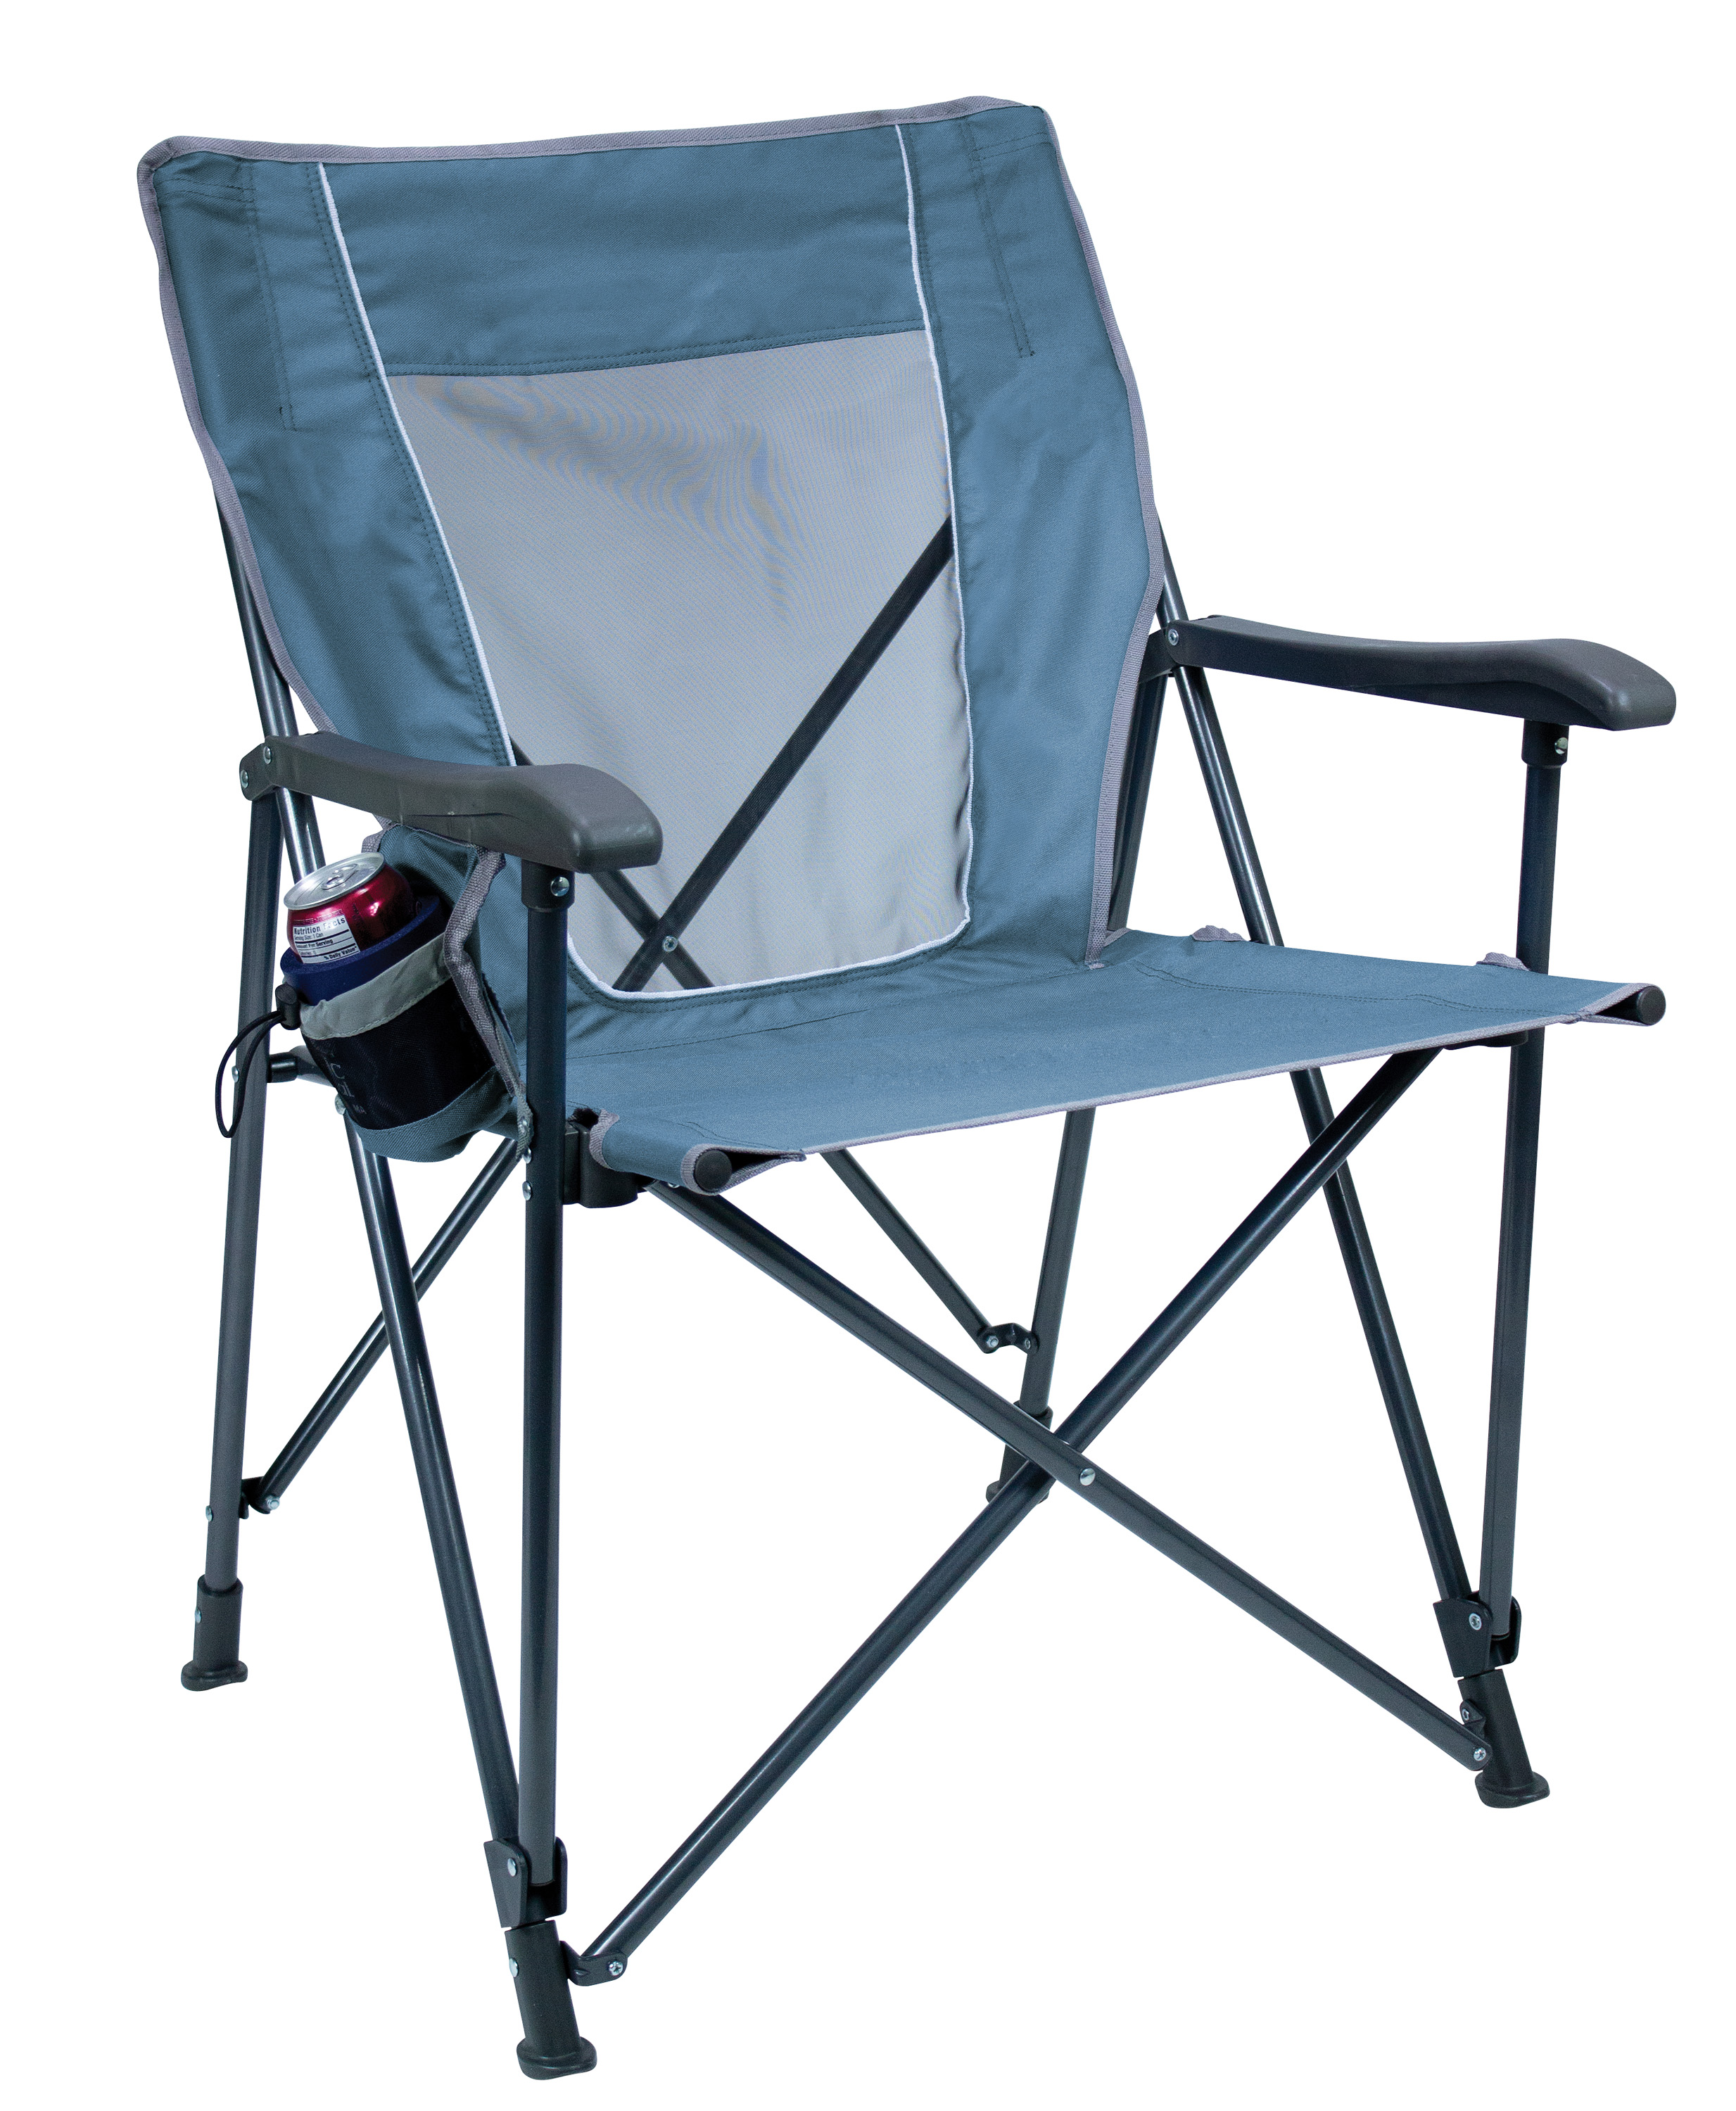 Imprinted eazy chair by gci outdoor custom chair for Camping a couture 49